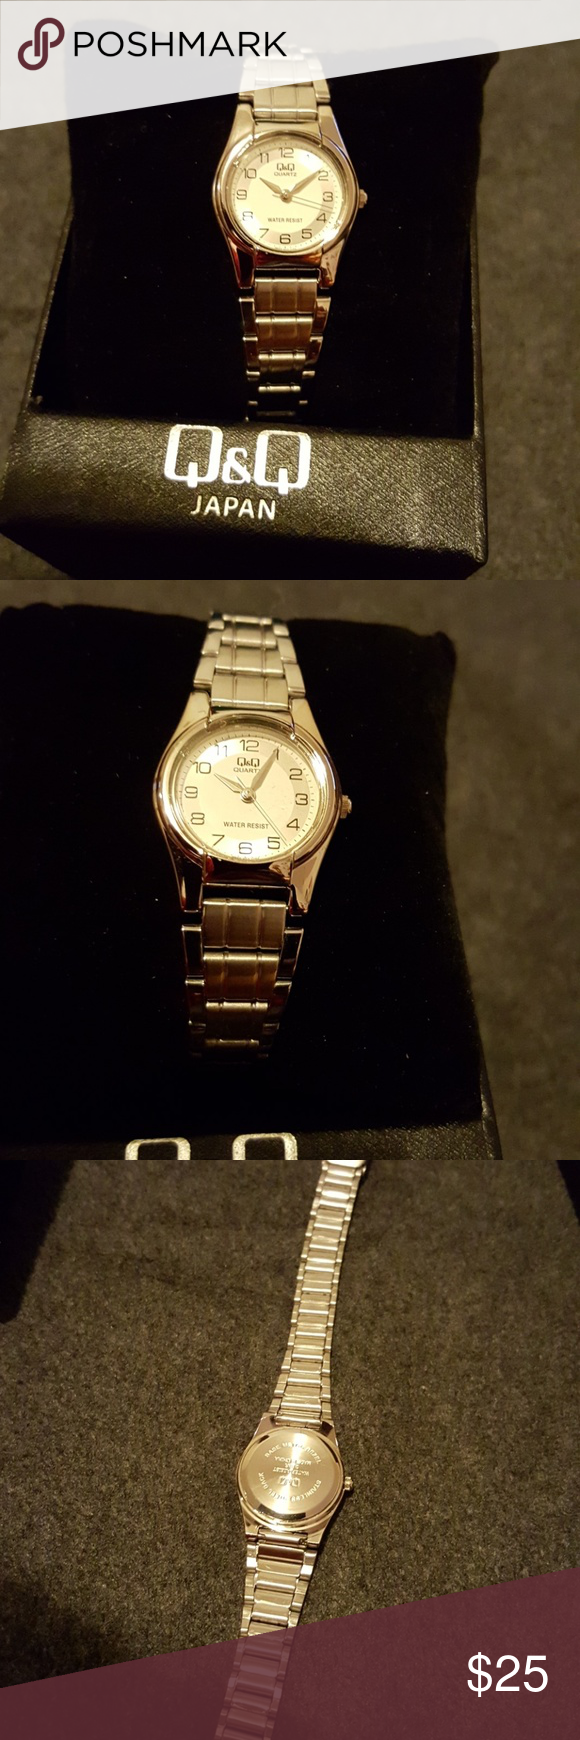 Q Watch Silver Band 3 Bars Water Resistant Stainless Steel Back New With Box Never Worn